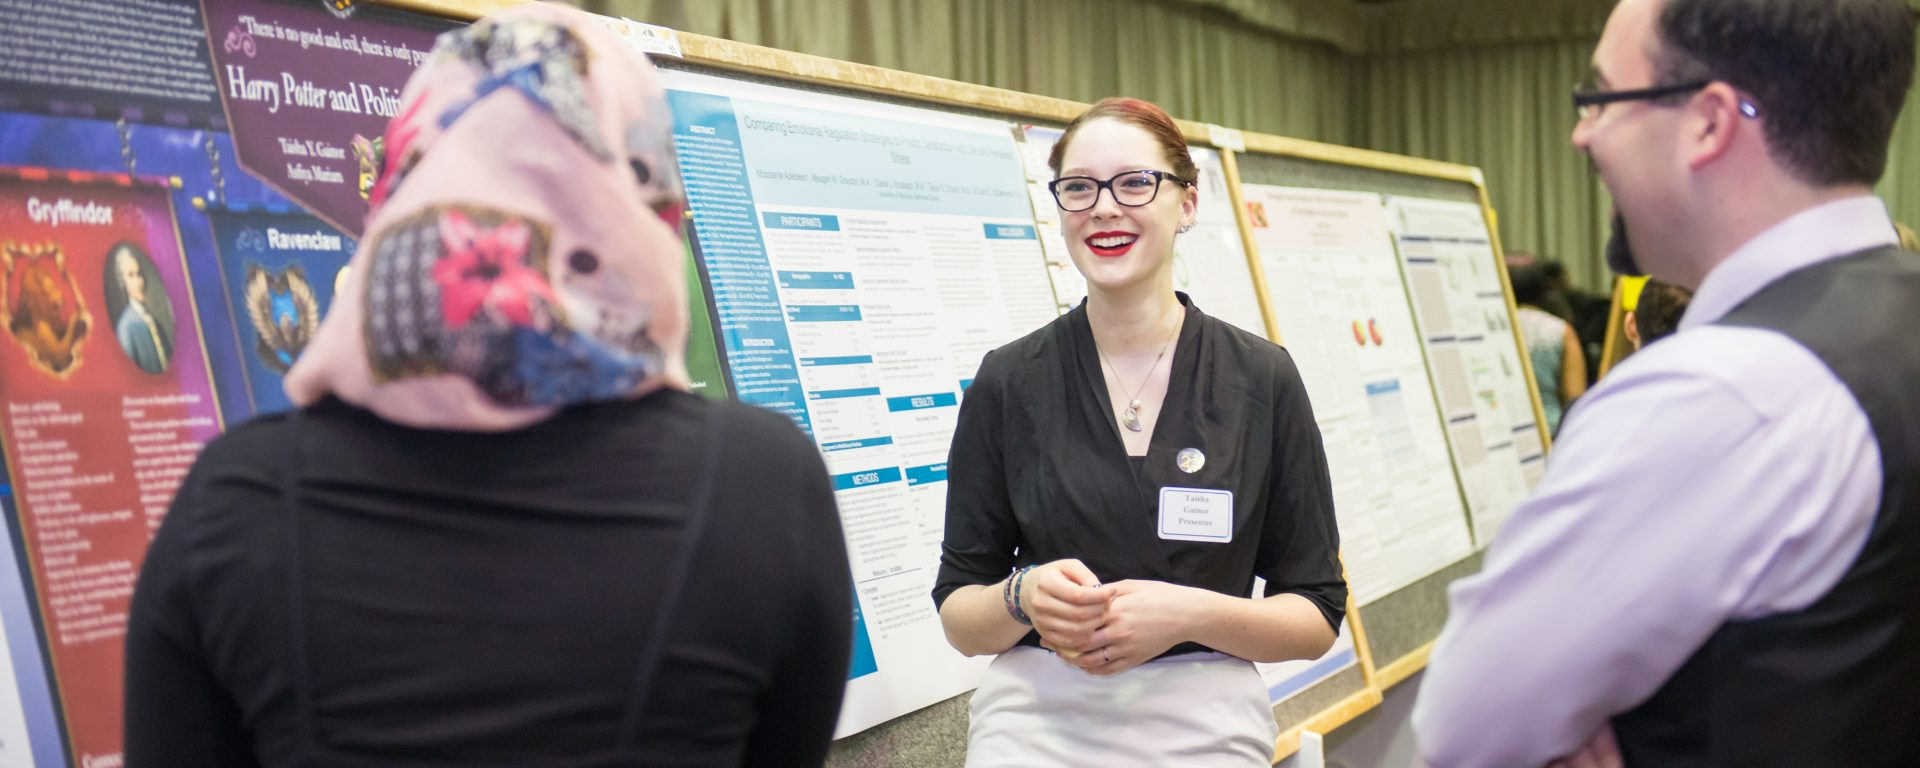 Undergraduate Research and Creative Achievement Day celebrates 20 years of remarkable student work